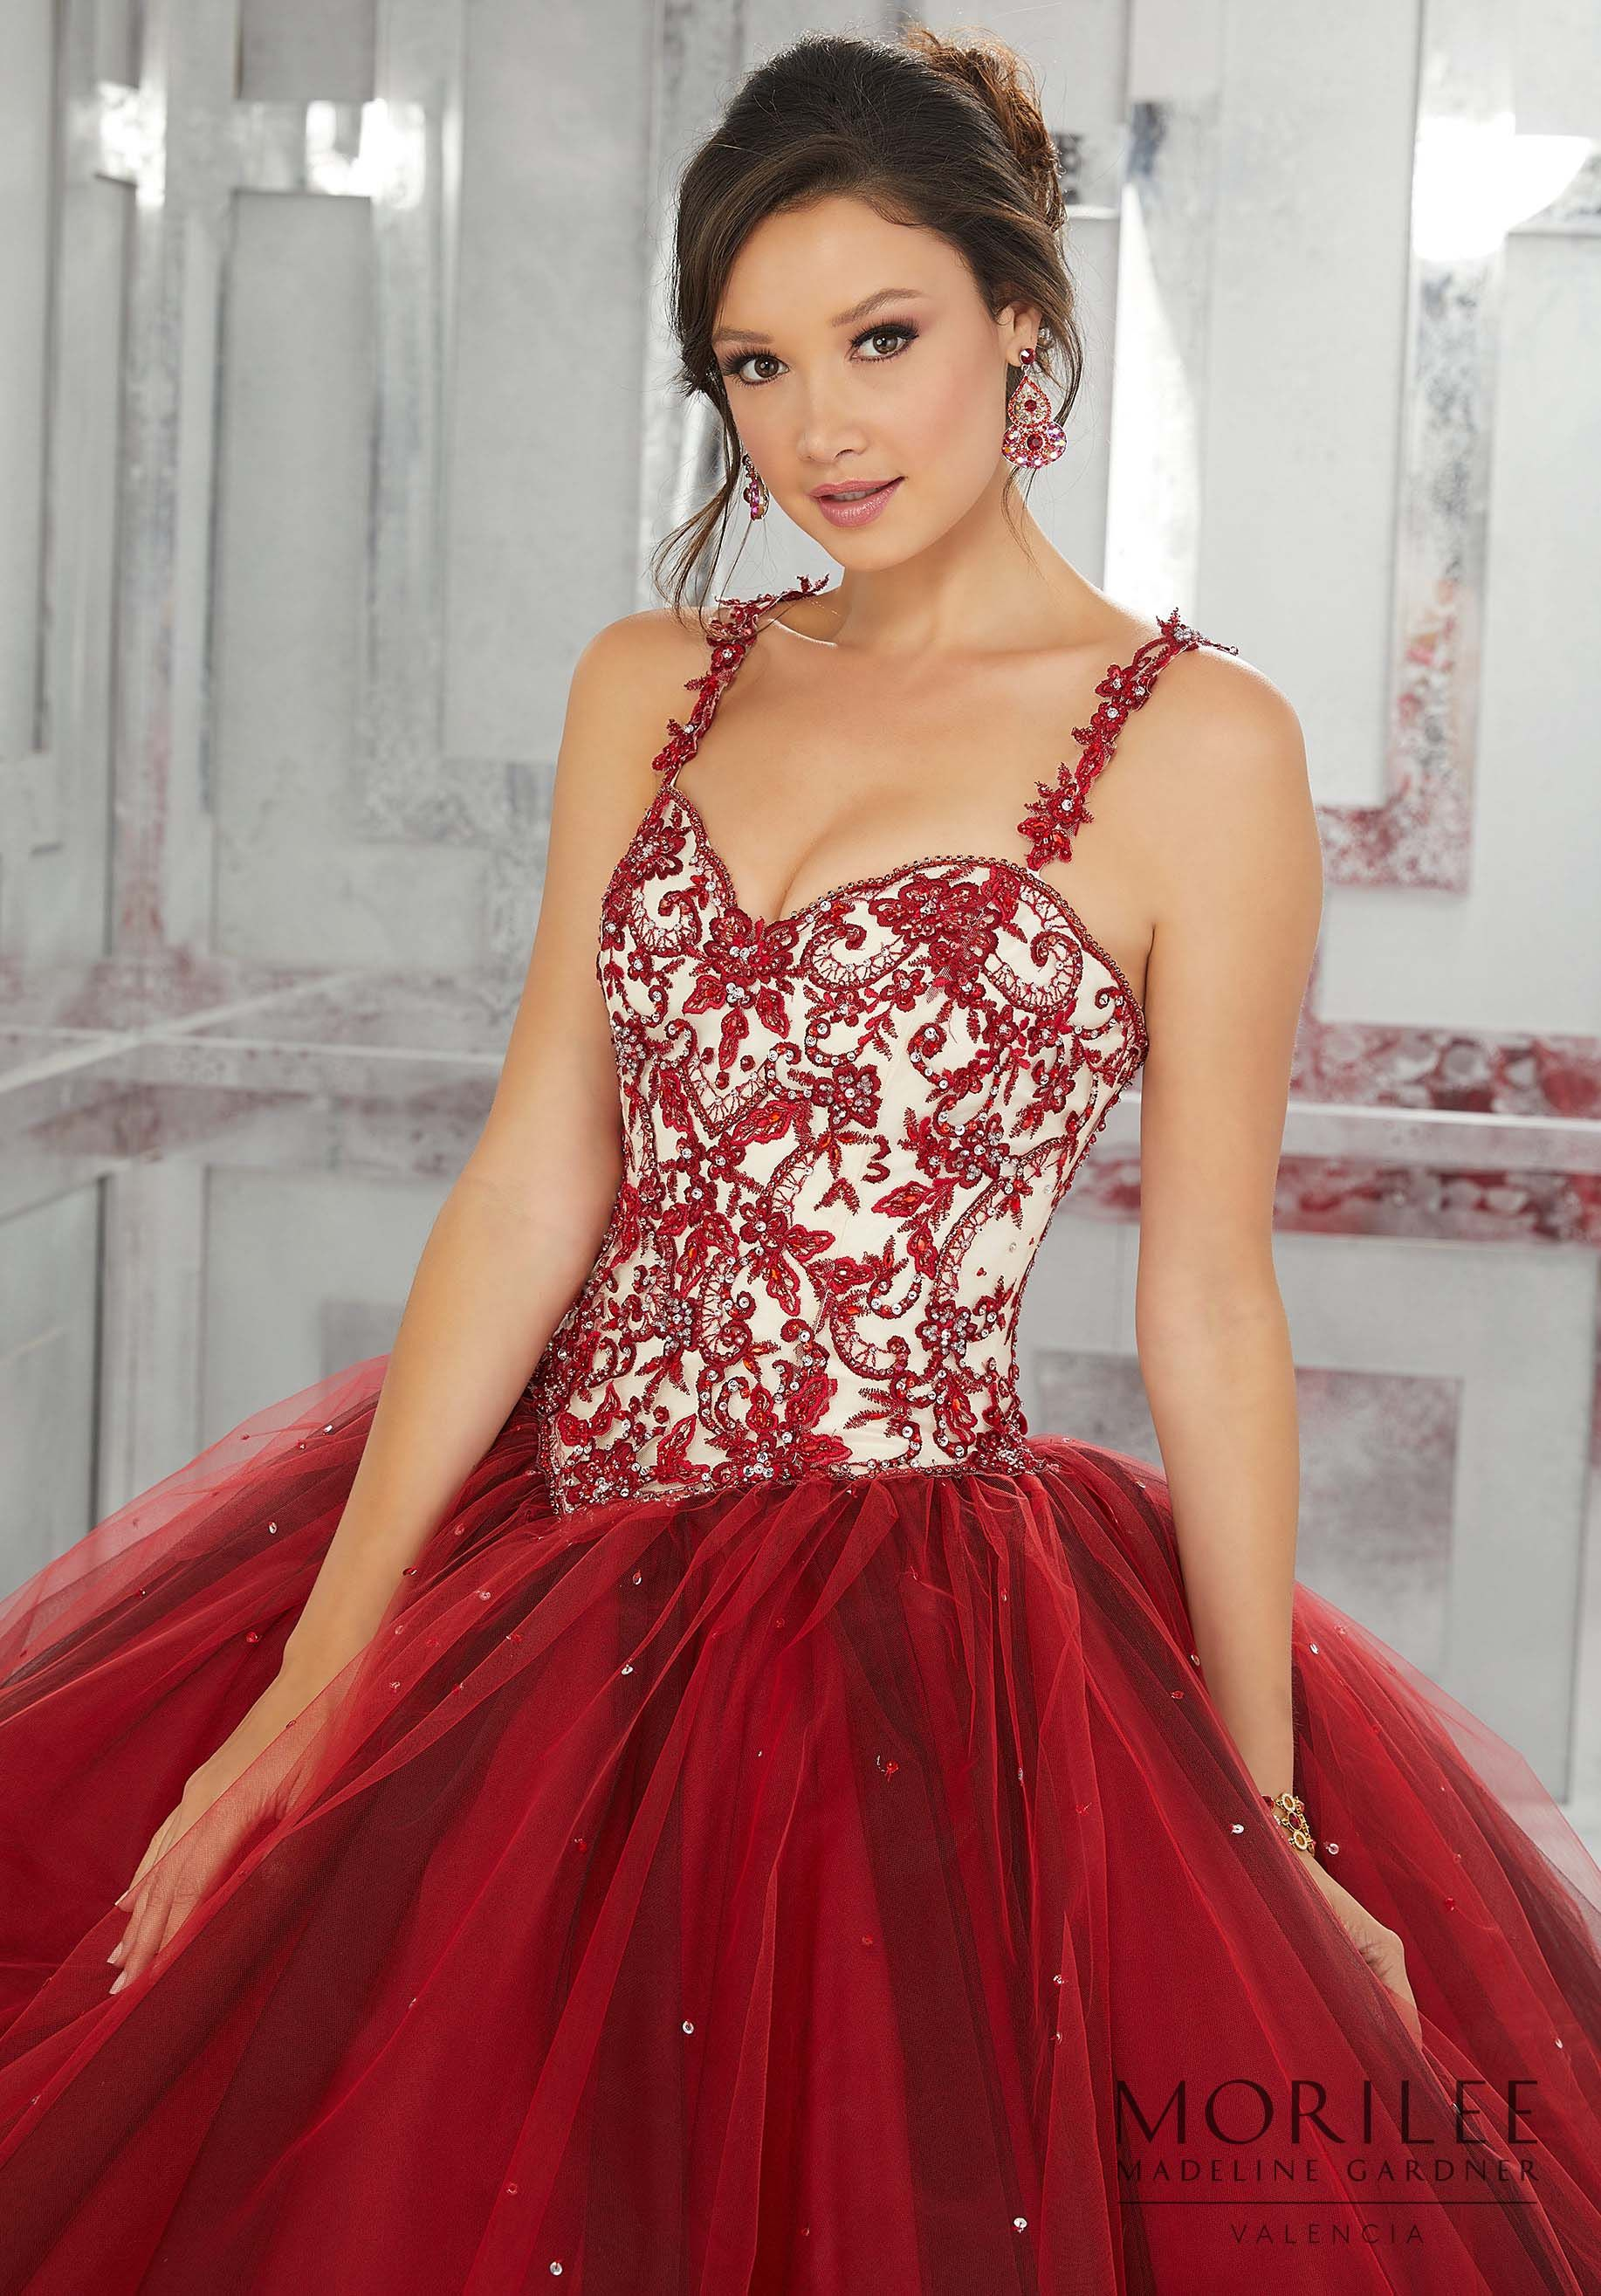 c21d382cd89 Red Beautiful Embroidered Details Take Center Stage on This Tulle  Quinceañera Ball gown. A Sweetheart